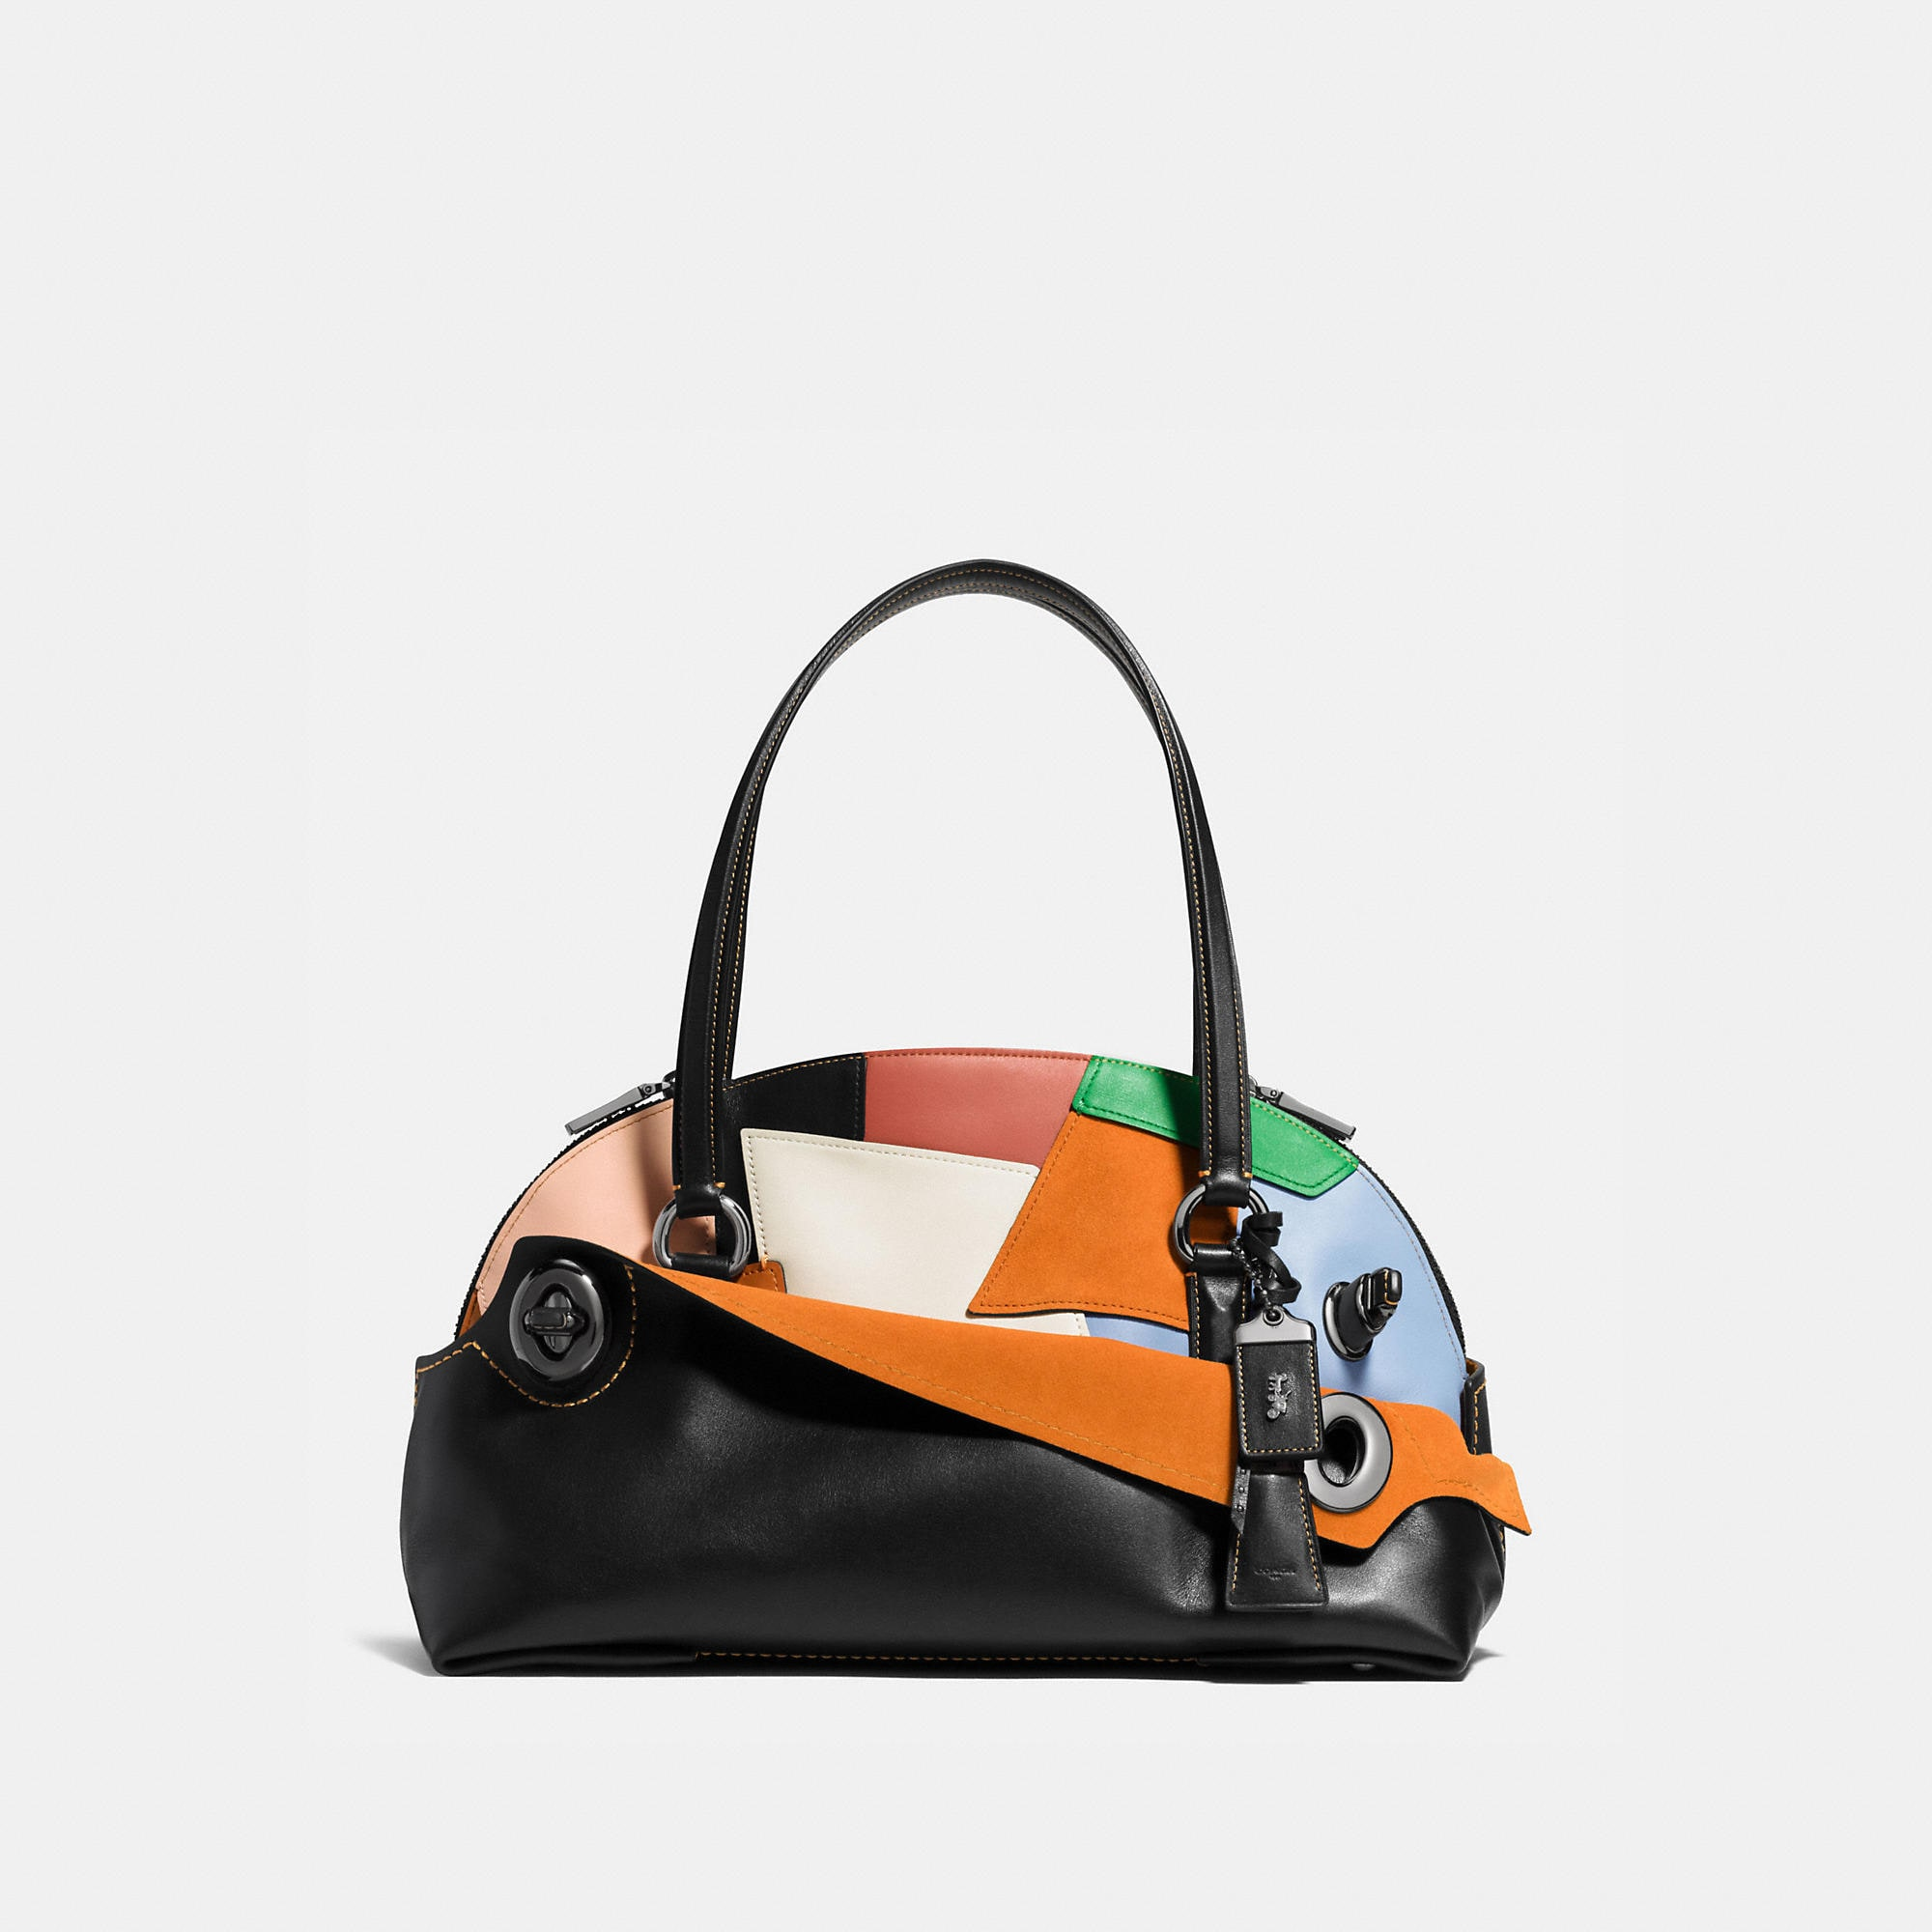 Coach 1941 Outlaw Satchel In Patchwork Leather